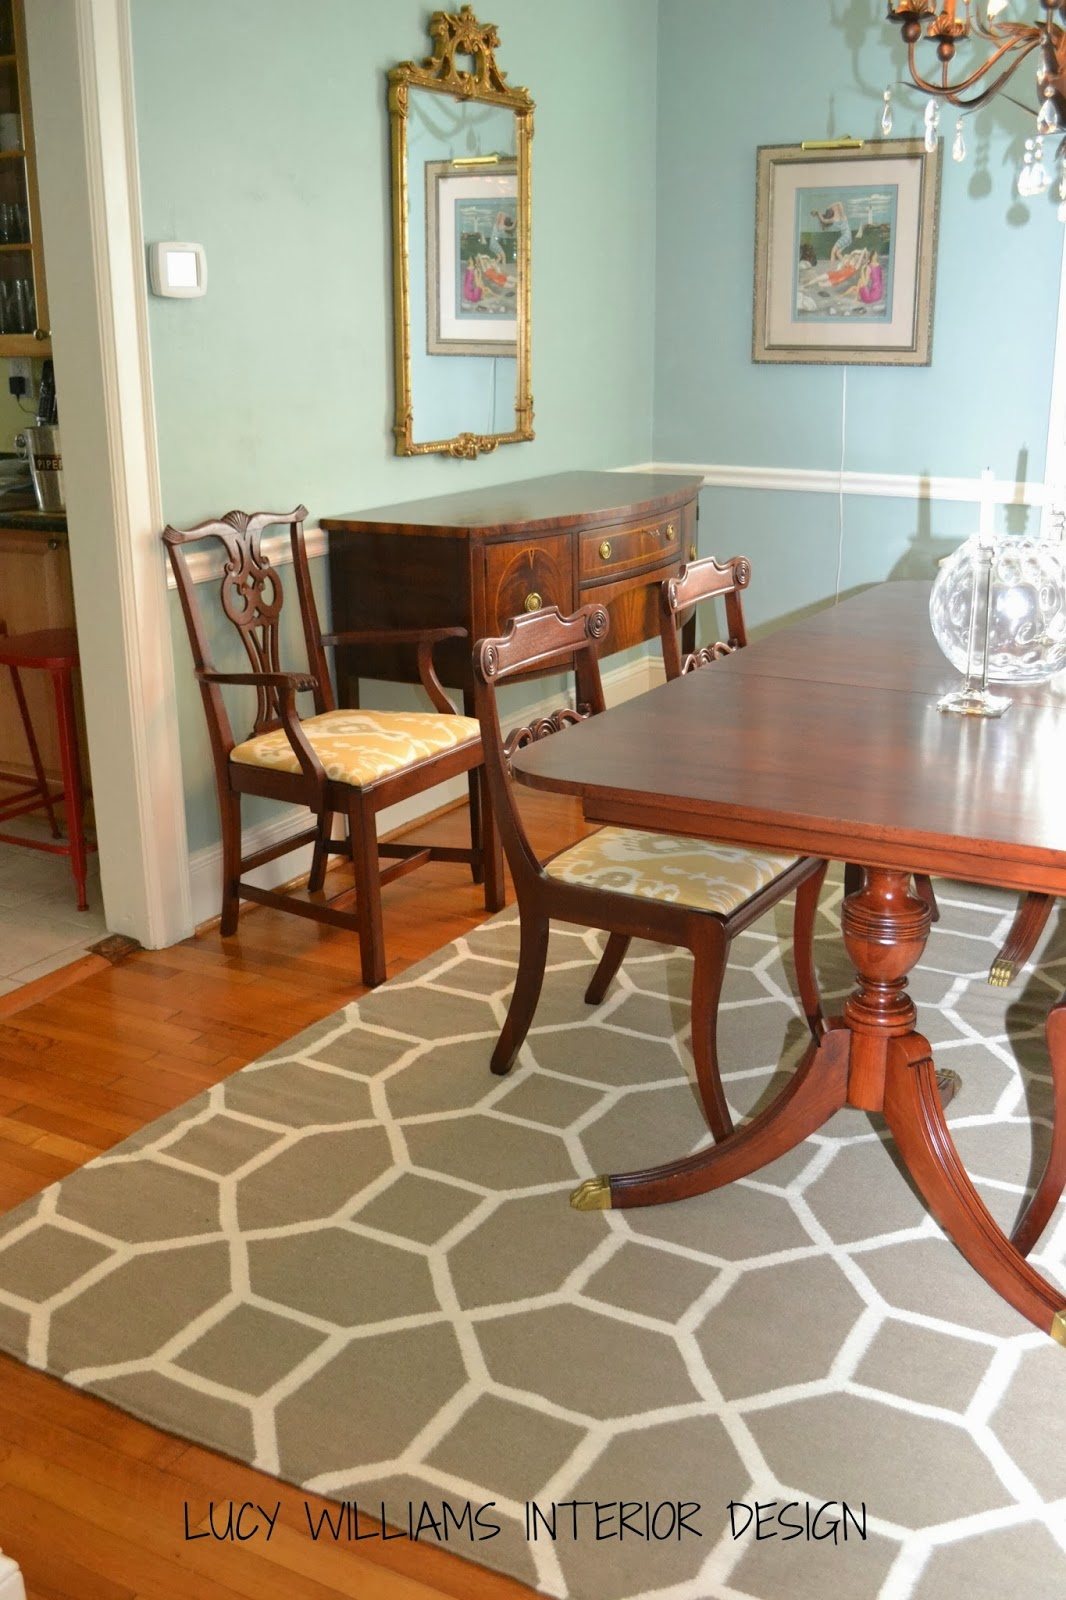 LUCY WILLIAMS INTERIOR DESIGN BLOG: BEFORE AND AFTER: DINING ROOM RUG!